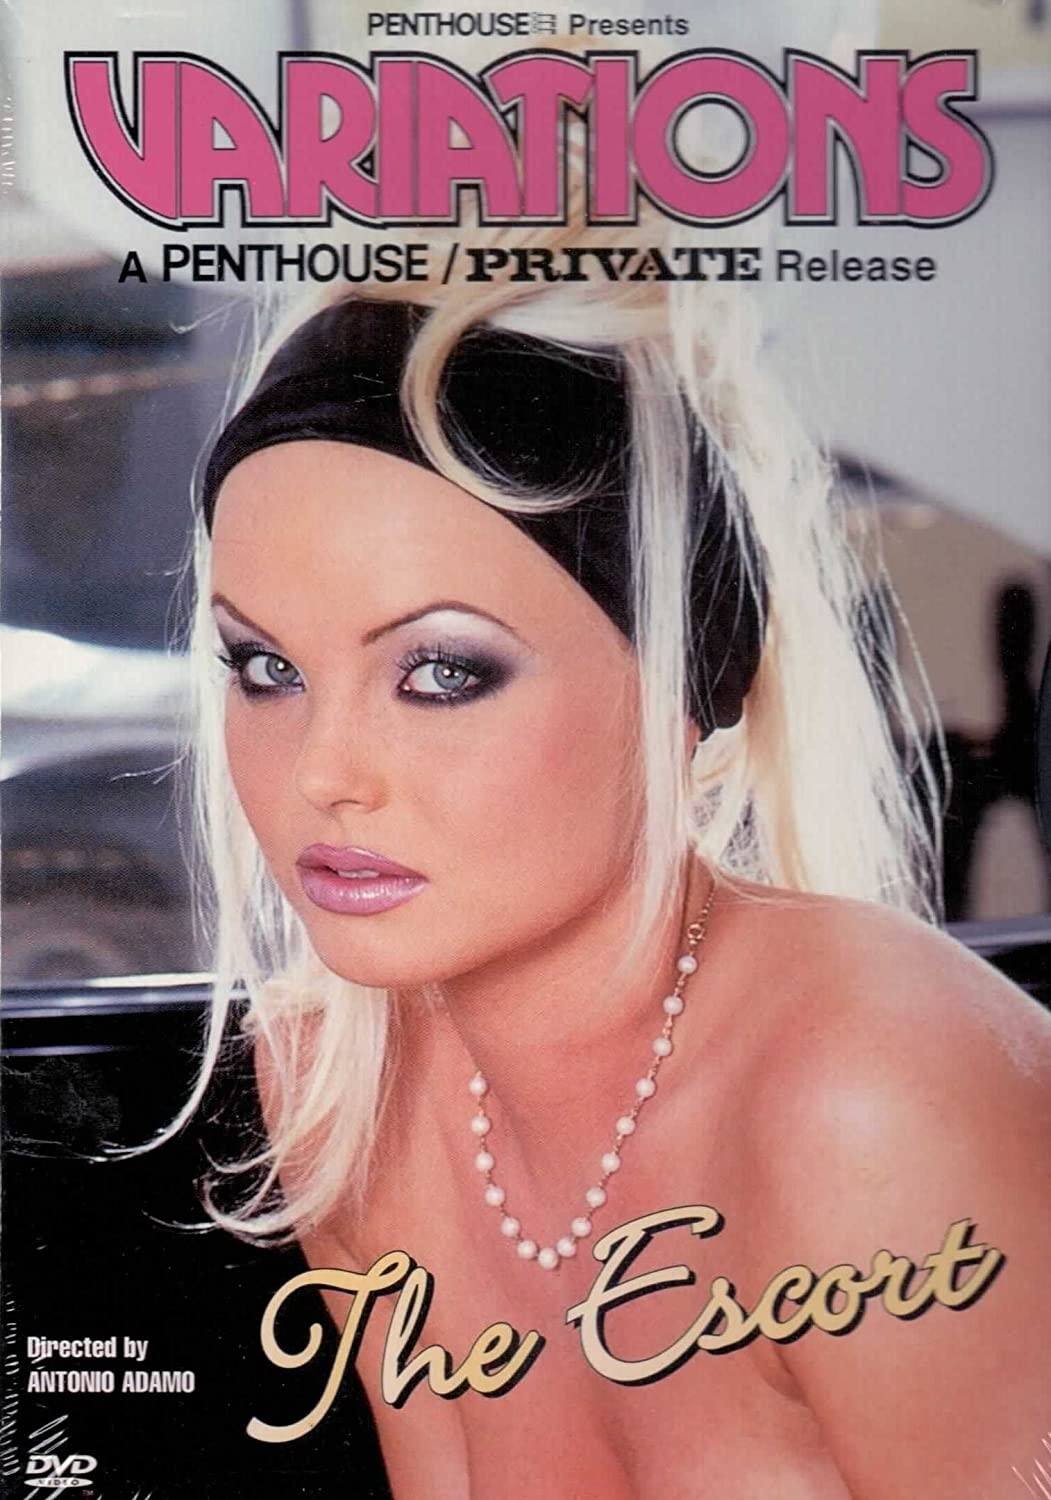 Amazon.com: Penthouse ~ Variations: The Escort ~ a Penthouse Private  Release: